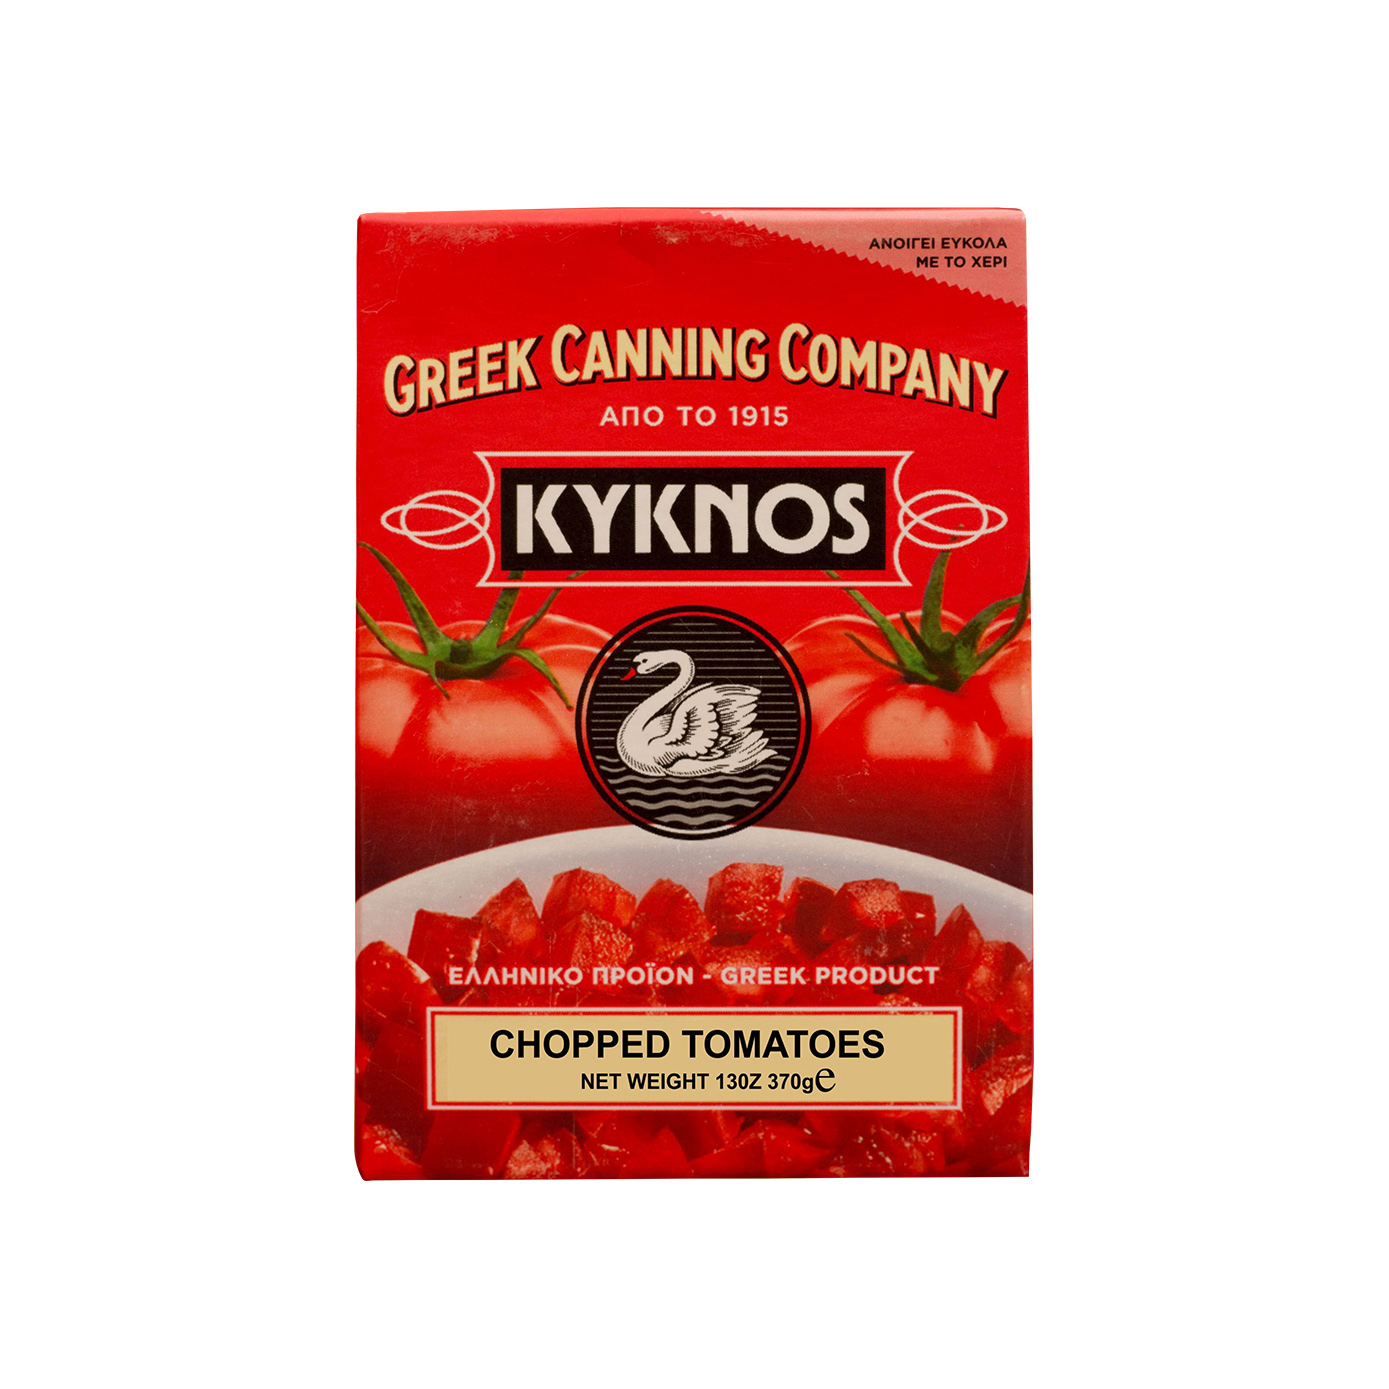 Kyknos Chopped Greek tomatoes in tomato juice 370gr